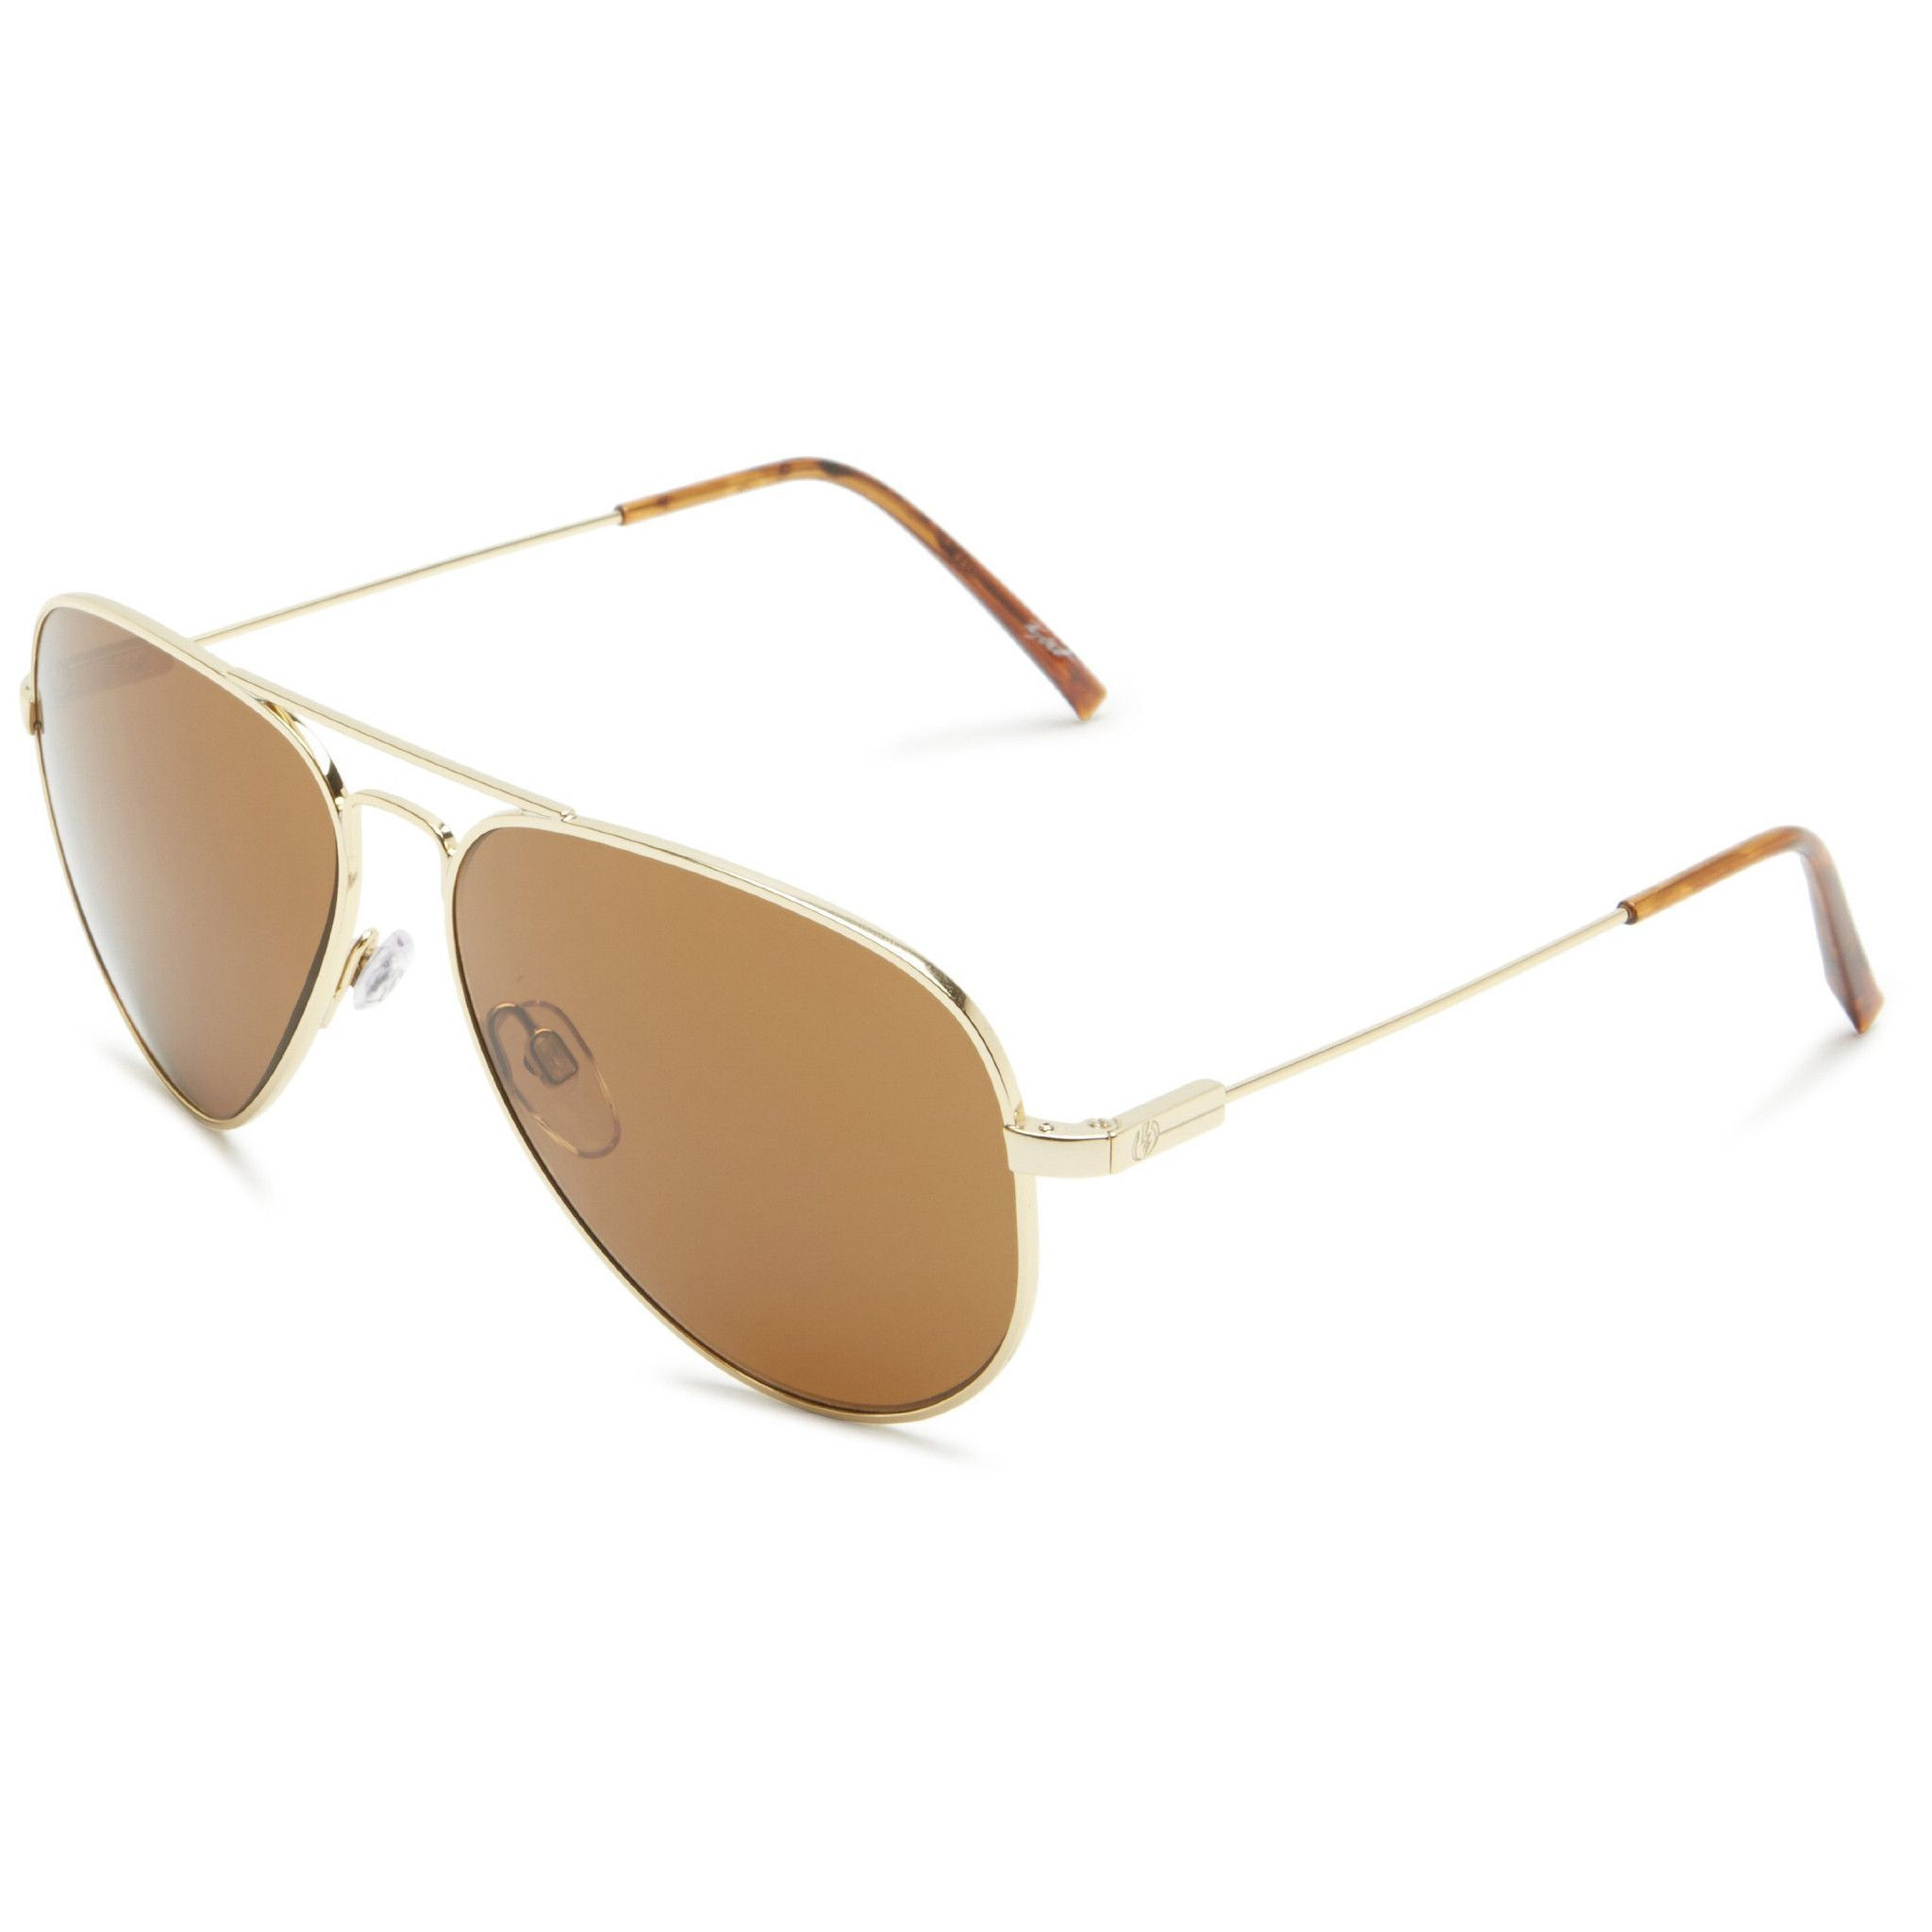 Electric Visual Av.1 Aviator Sunglasses Gold Tone Frame Bronze Lens ES11109839